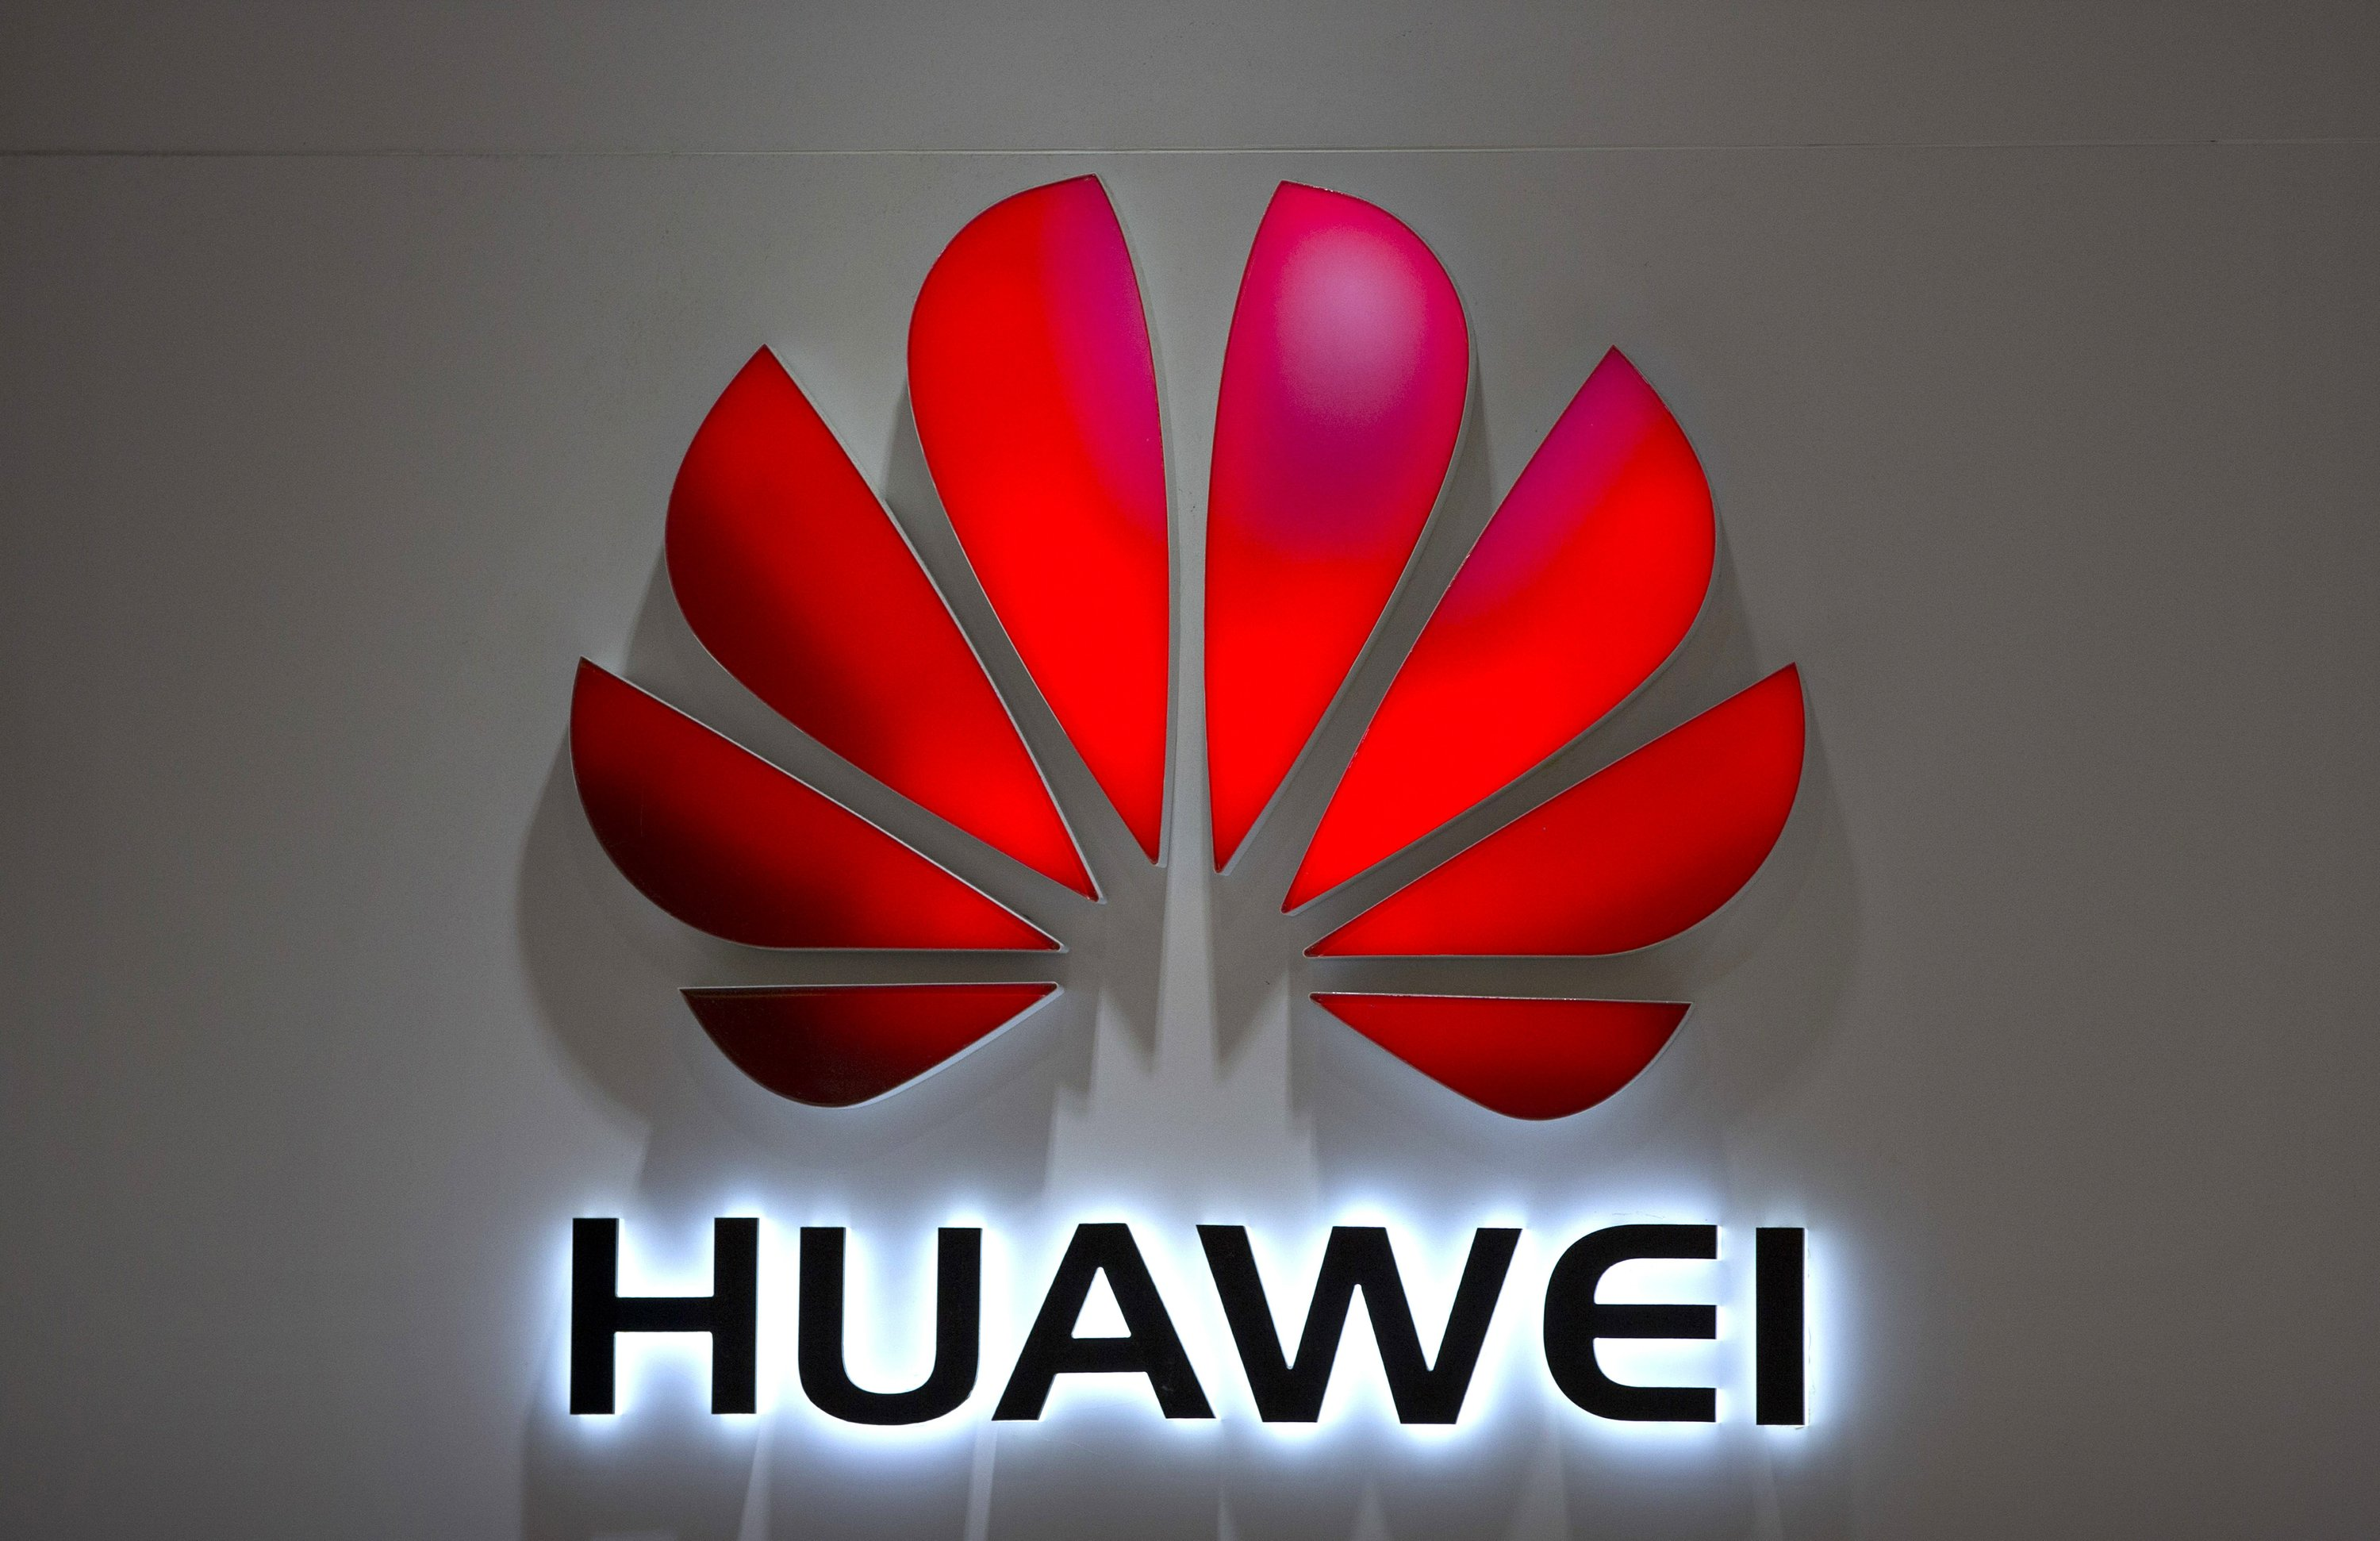 Q&A: What is Huawei and why does Washington worry about it?